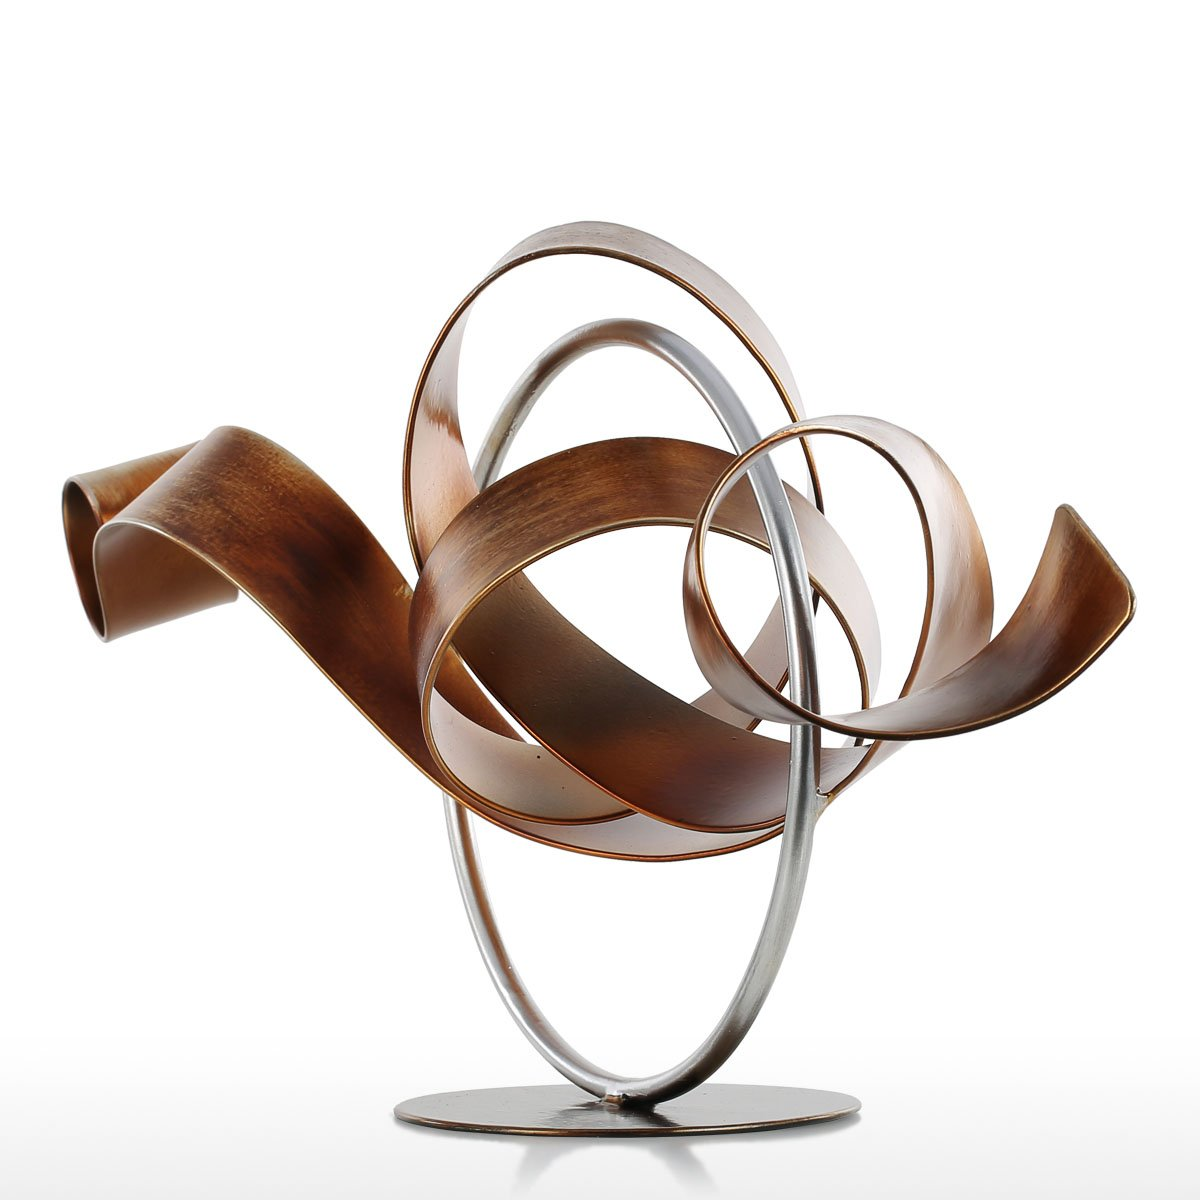 Tooart Abstract Sculpture Circle and Ribbon Modern Sculpture Metal Sculpture for Home Office Decro